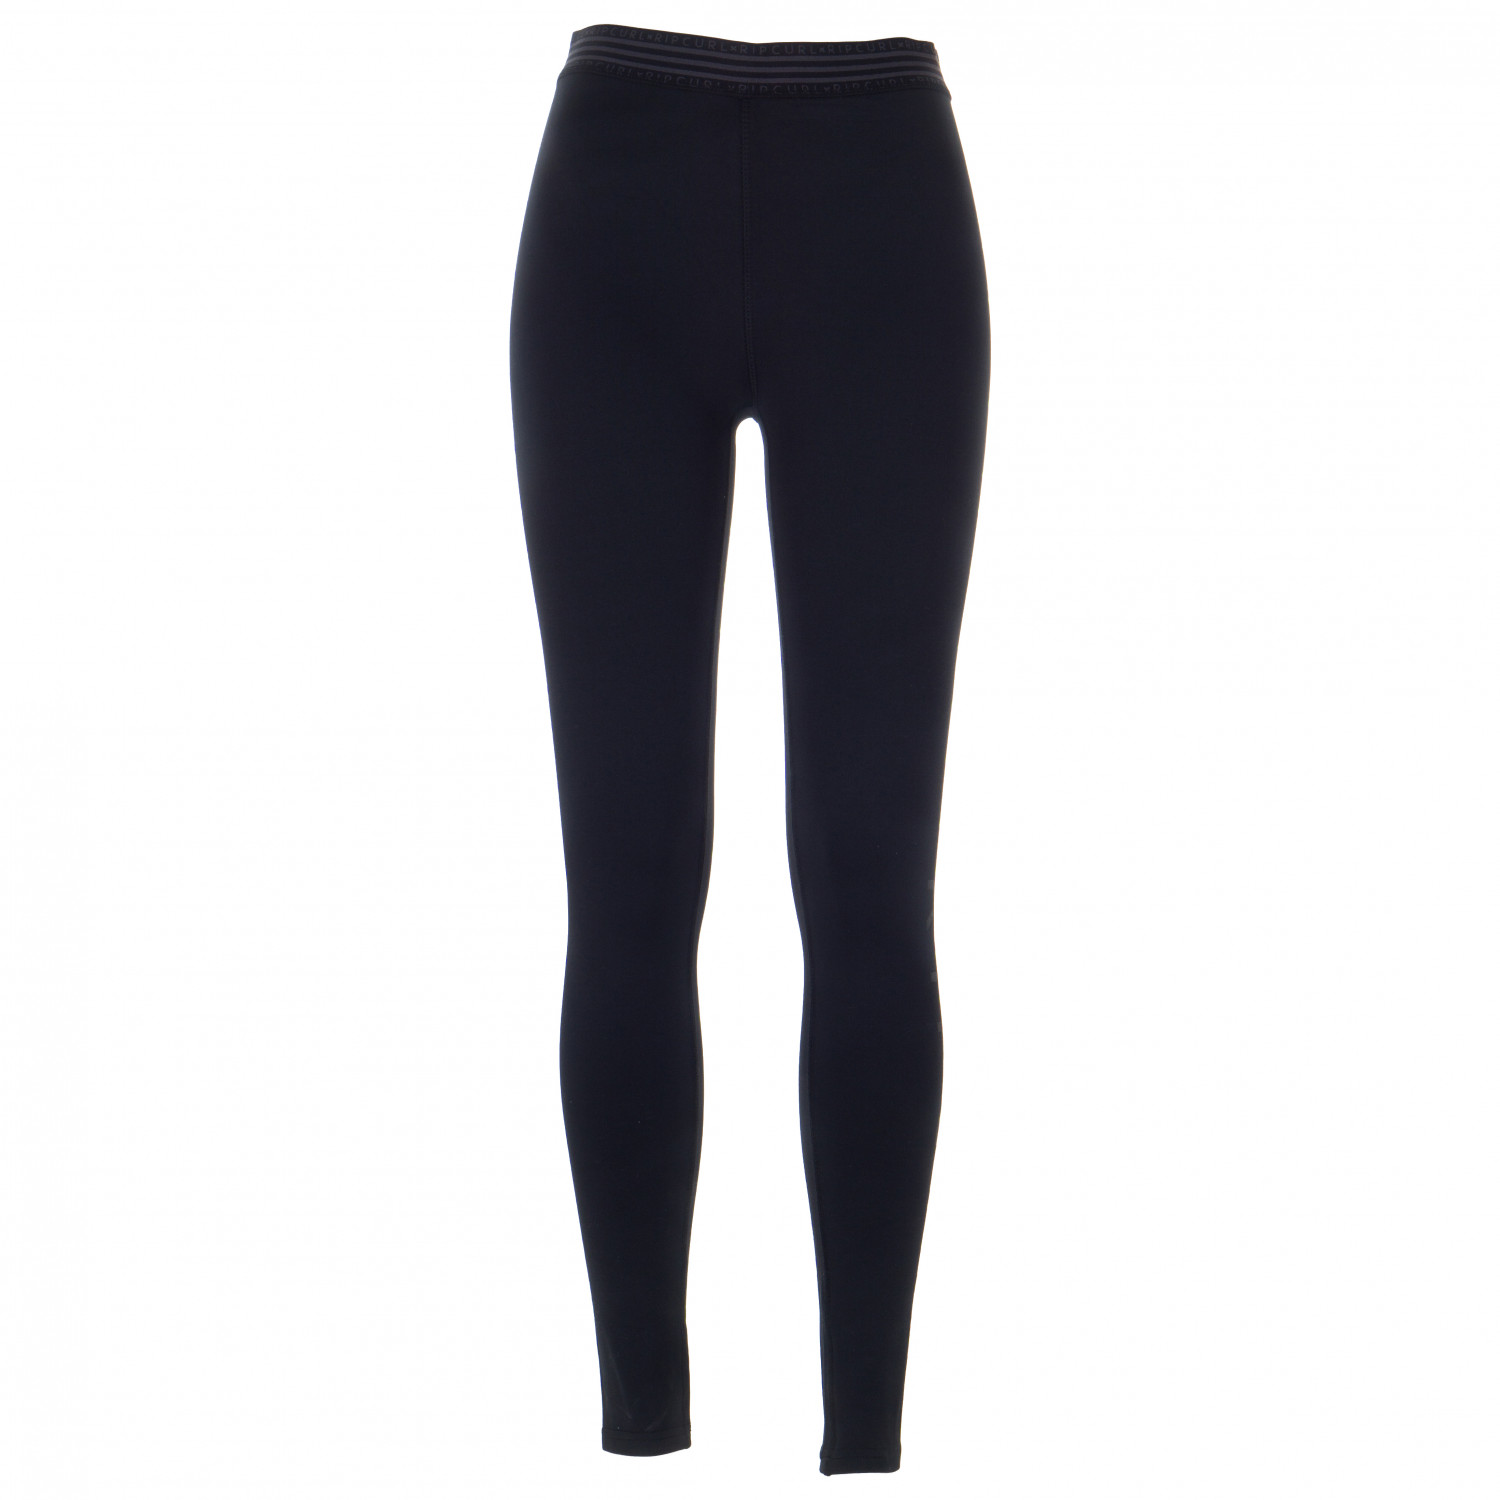 Rip Curl Womens Logo Legging Pants